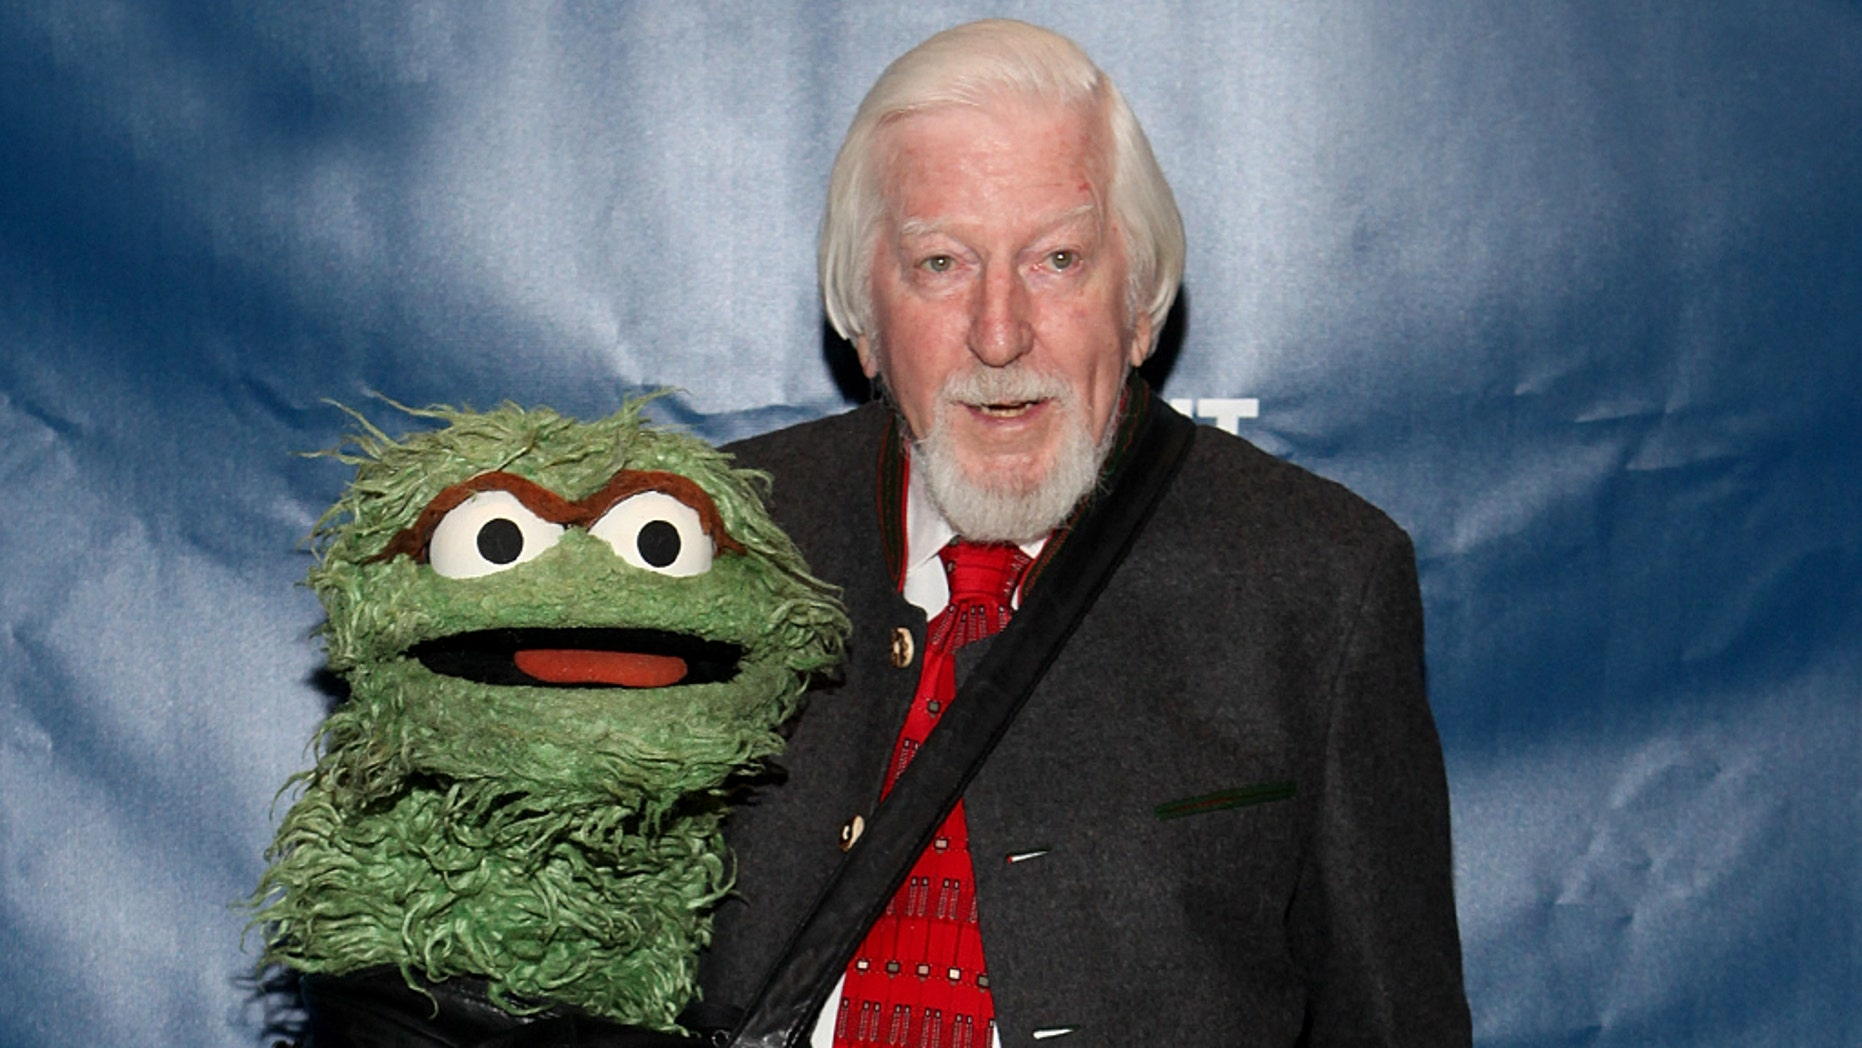 """Caroll Spinney told The New York Times he was retiring from """"Sesame Street"""" after portraying Big Bird and Oscar the Grouch since 1969."""